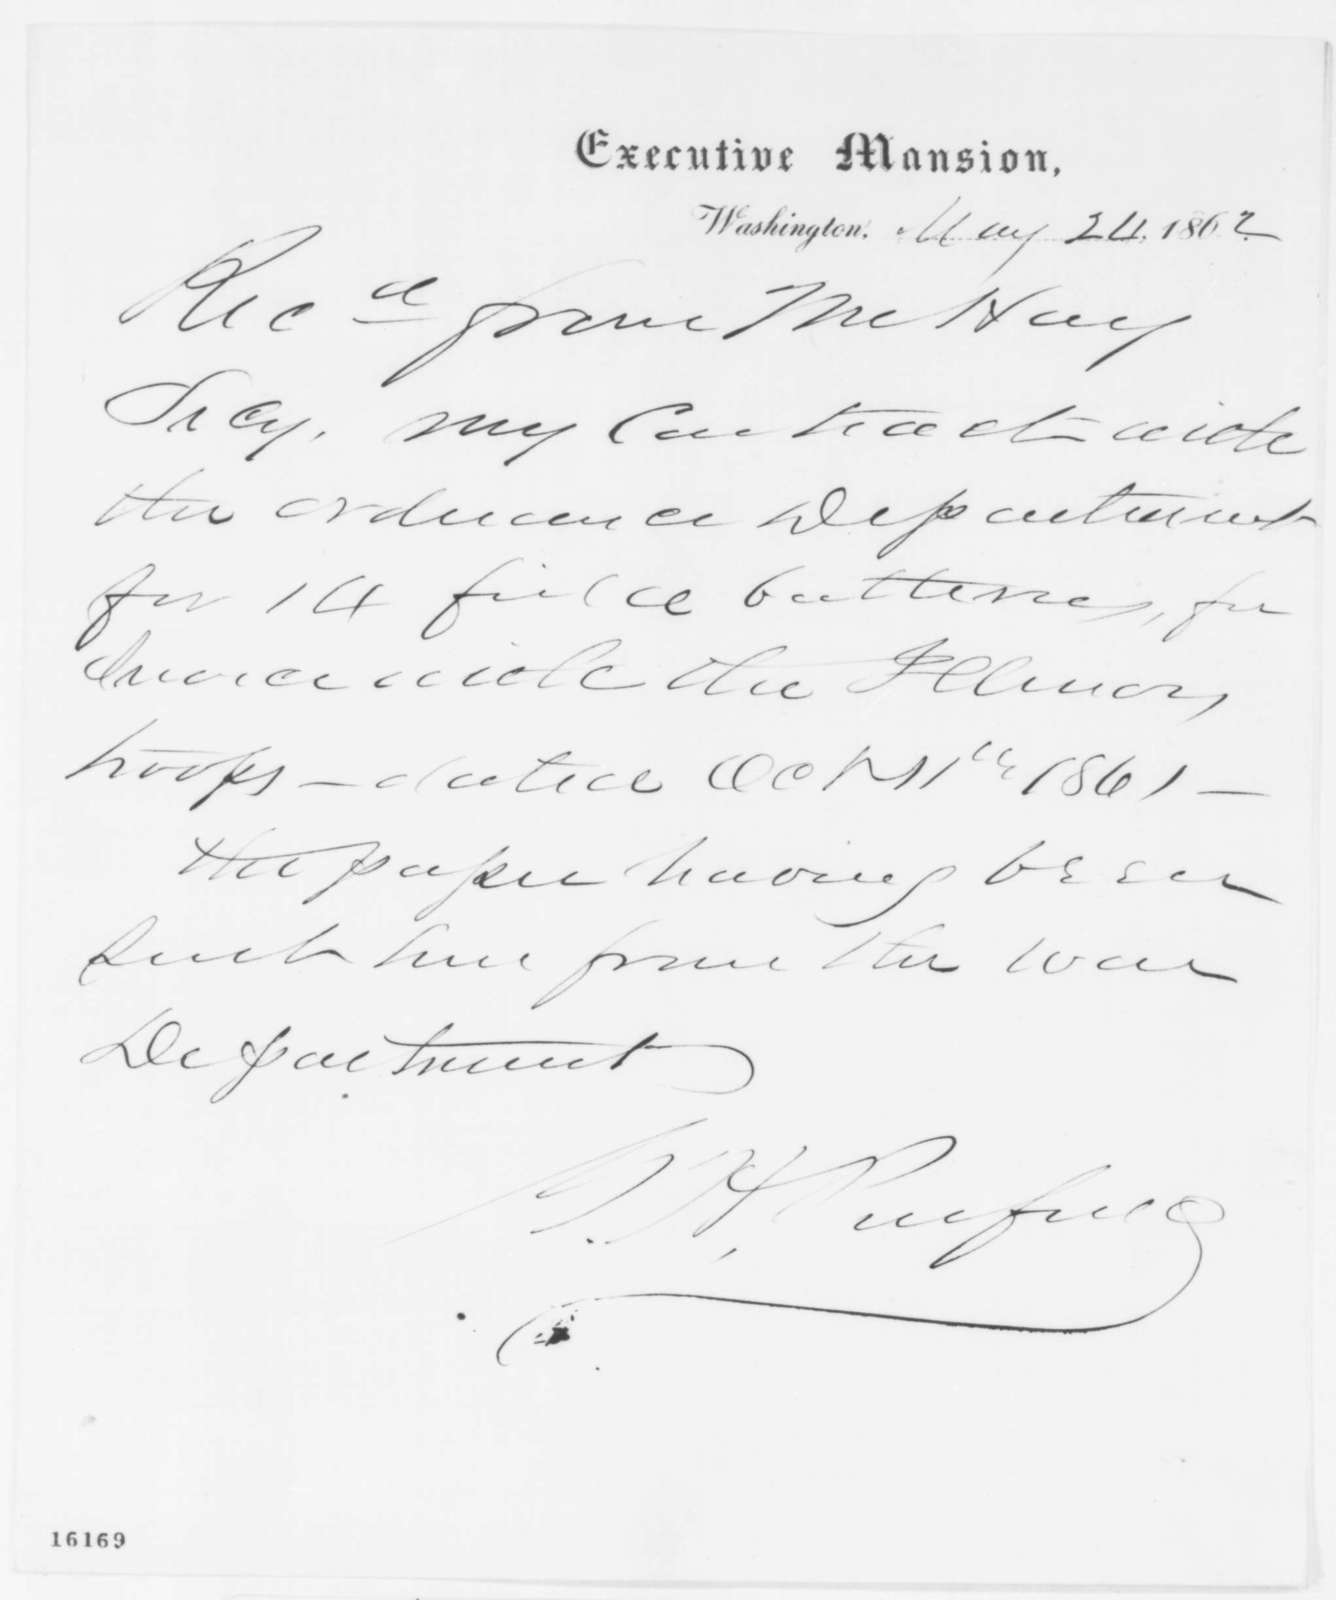 G. H. Penfield, Saturday, May 24, 1862  (Receipt)